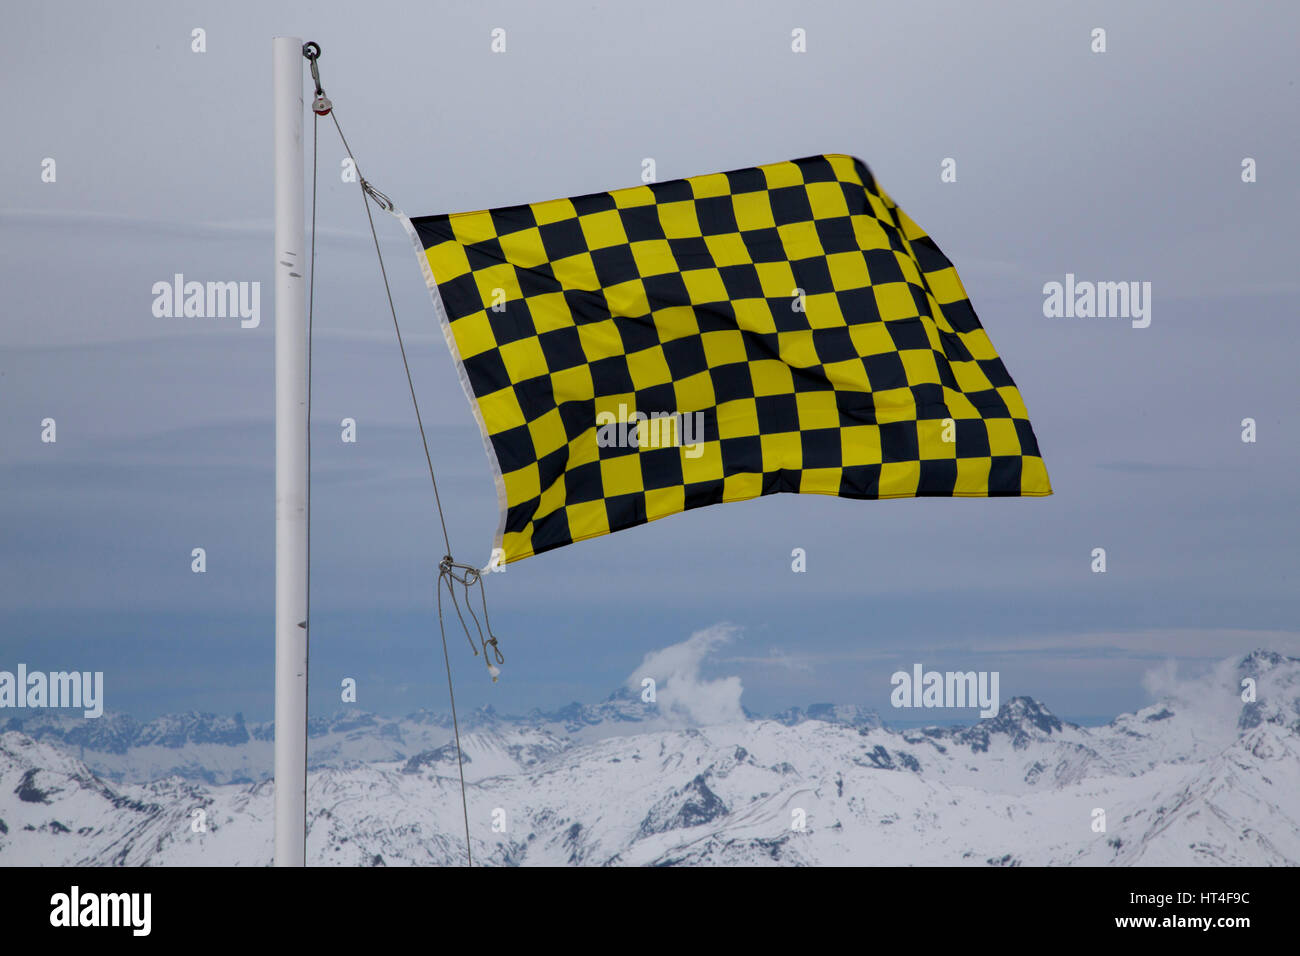 An avalanche warning flag can be seen at the French ski resort of Les Arcs. The yellow and black chequered flag - Stock Image